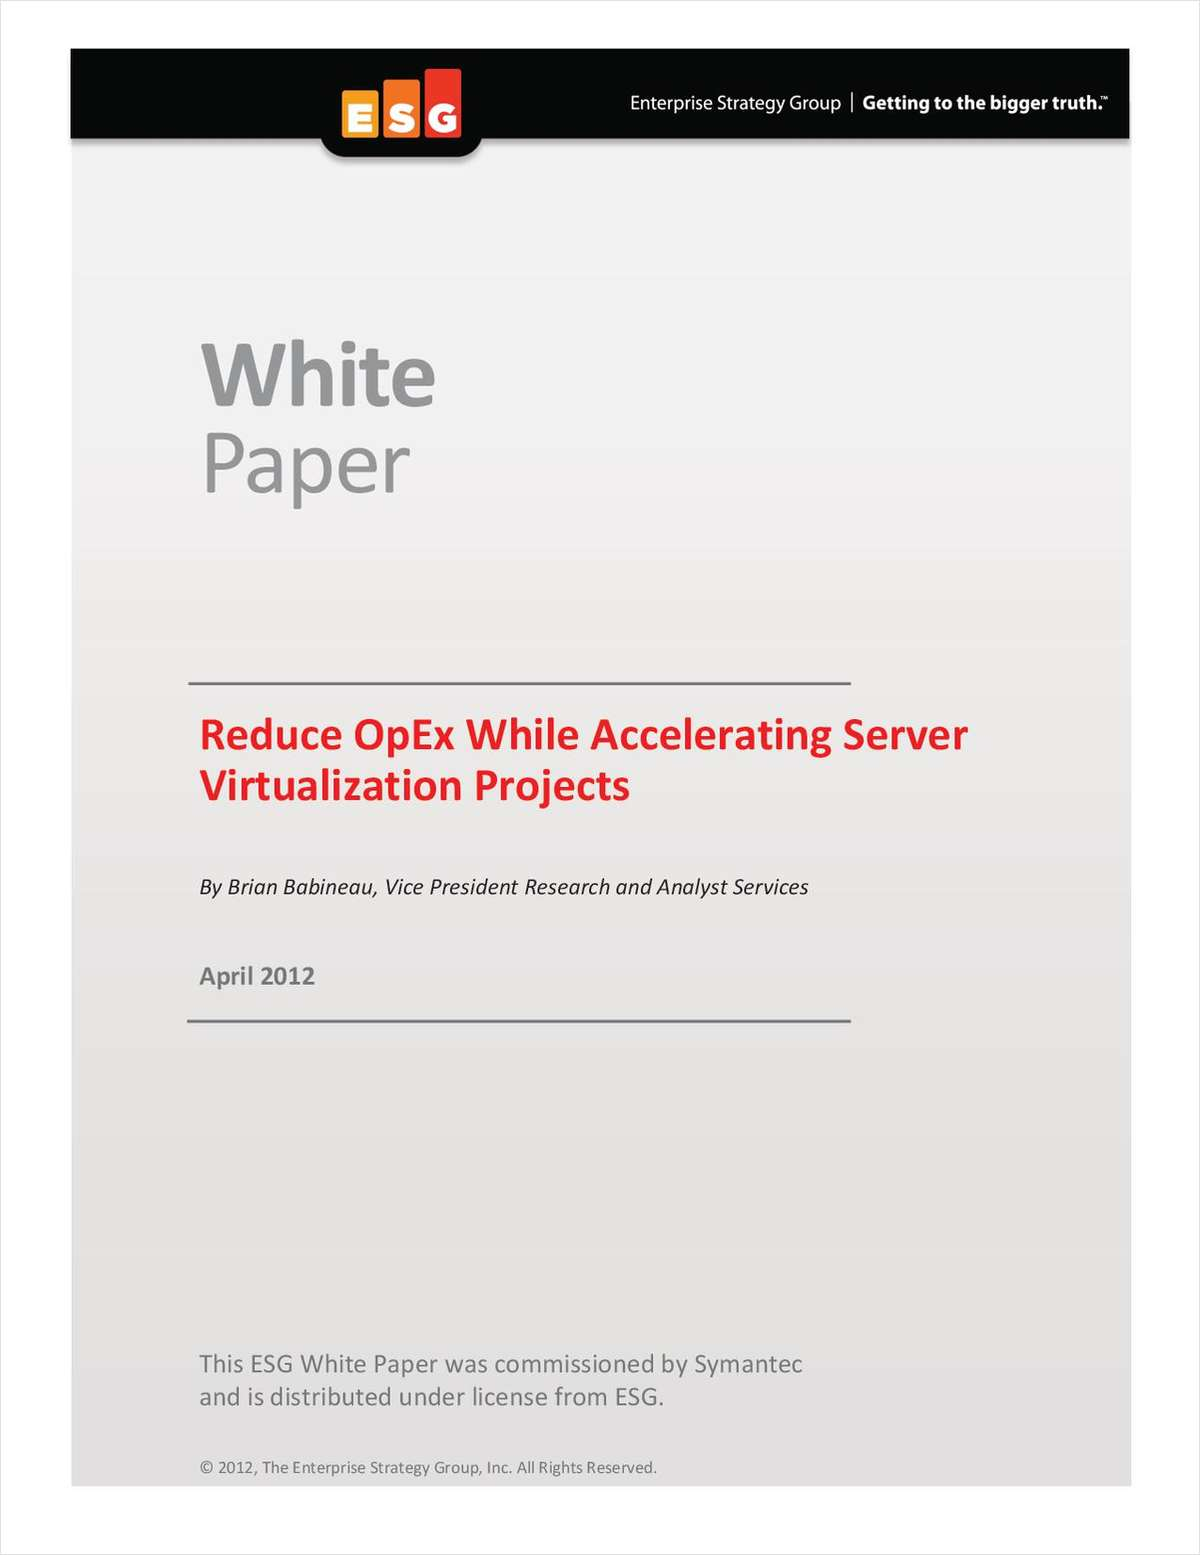 Reduce OpEx While Accelerating Server Virtualization Projects